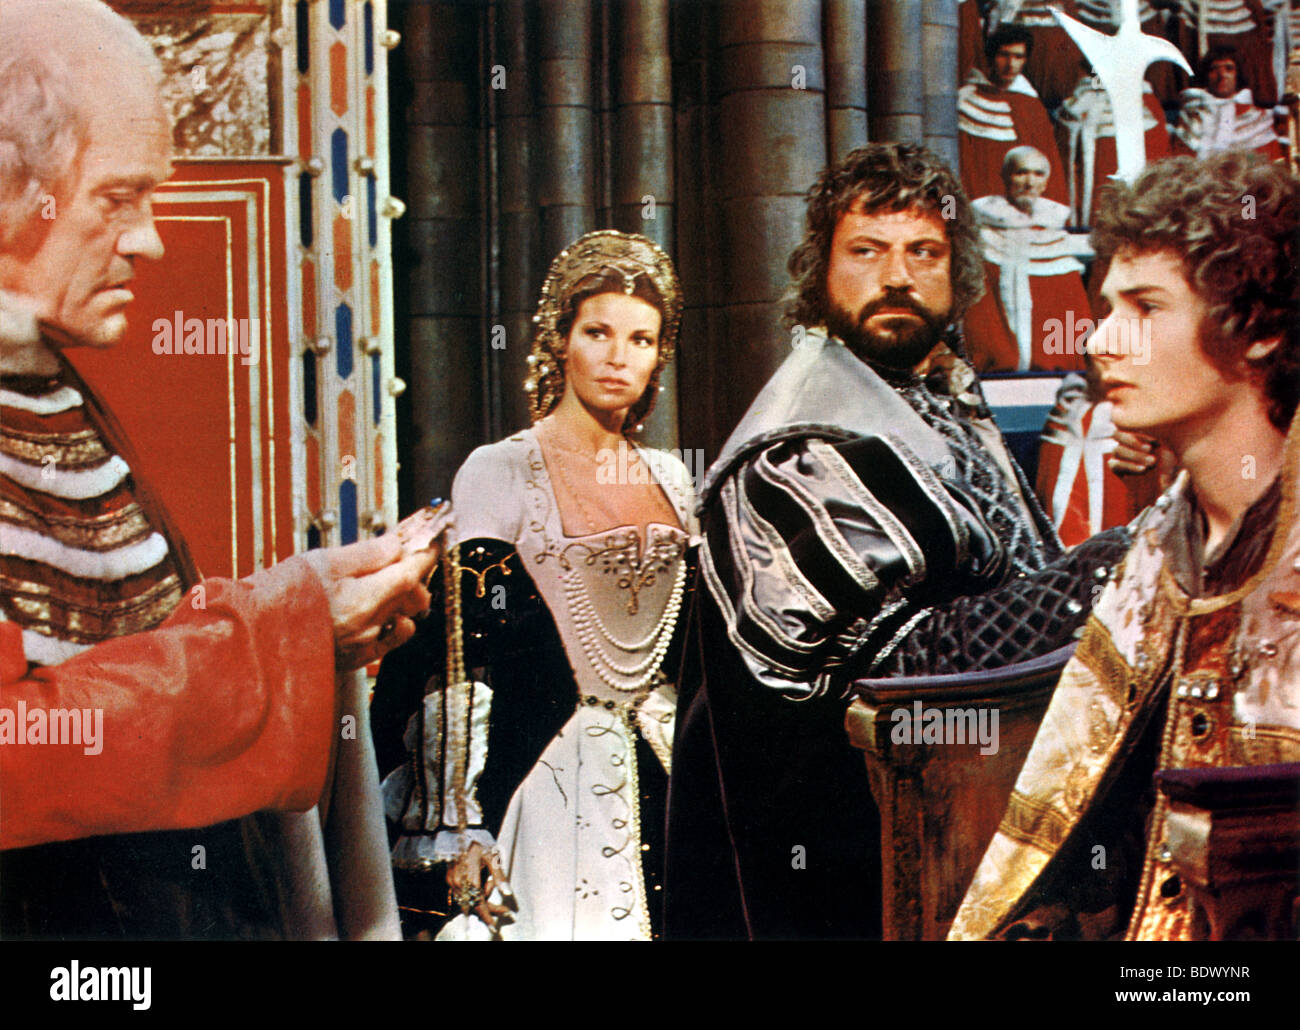 THE PRINCE AND THE PAUPER - 1977 IFP film with Oliver Reed second